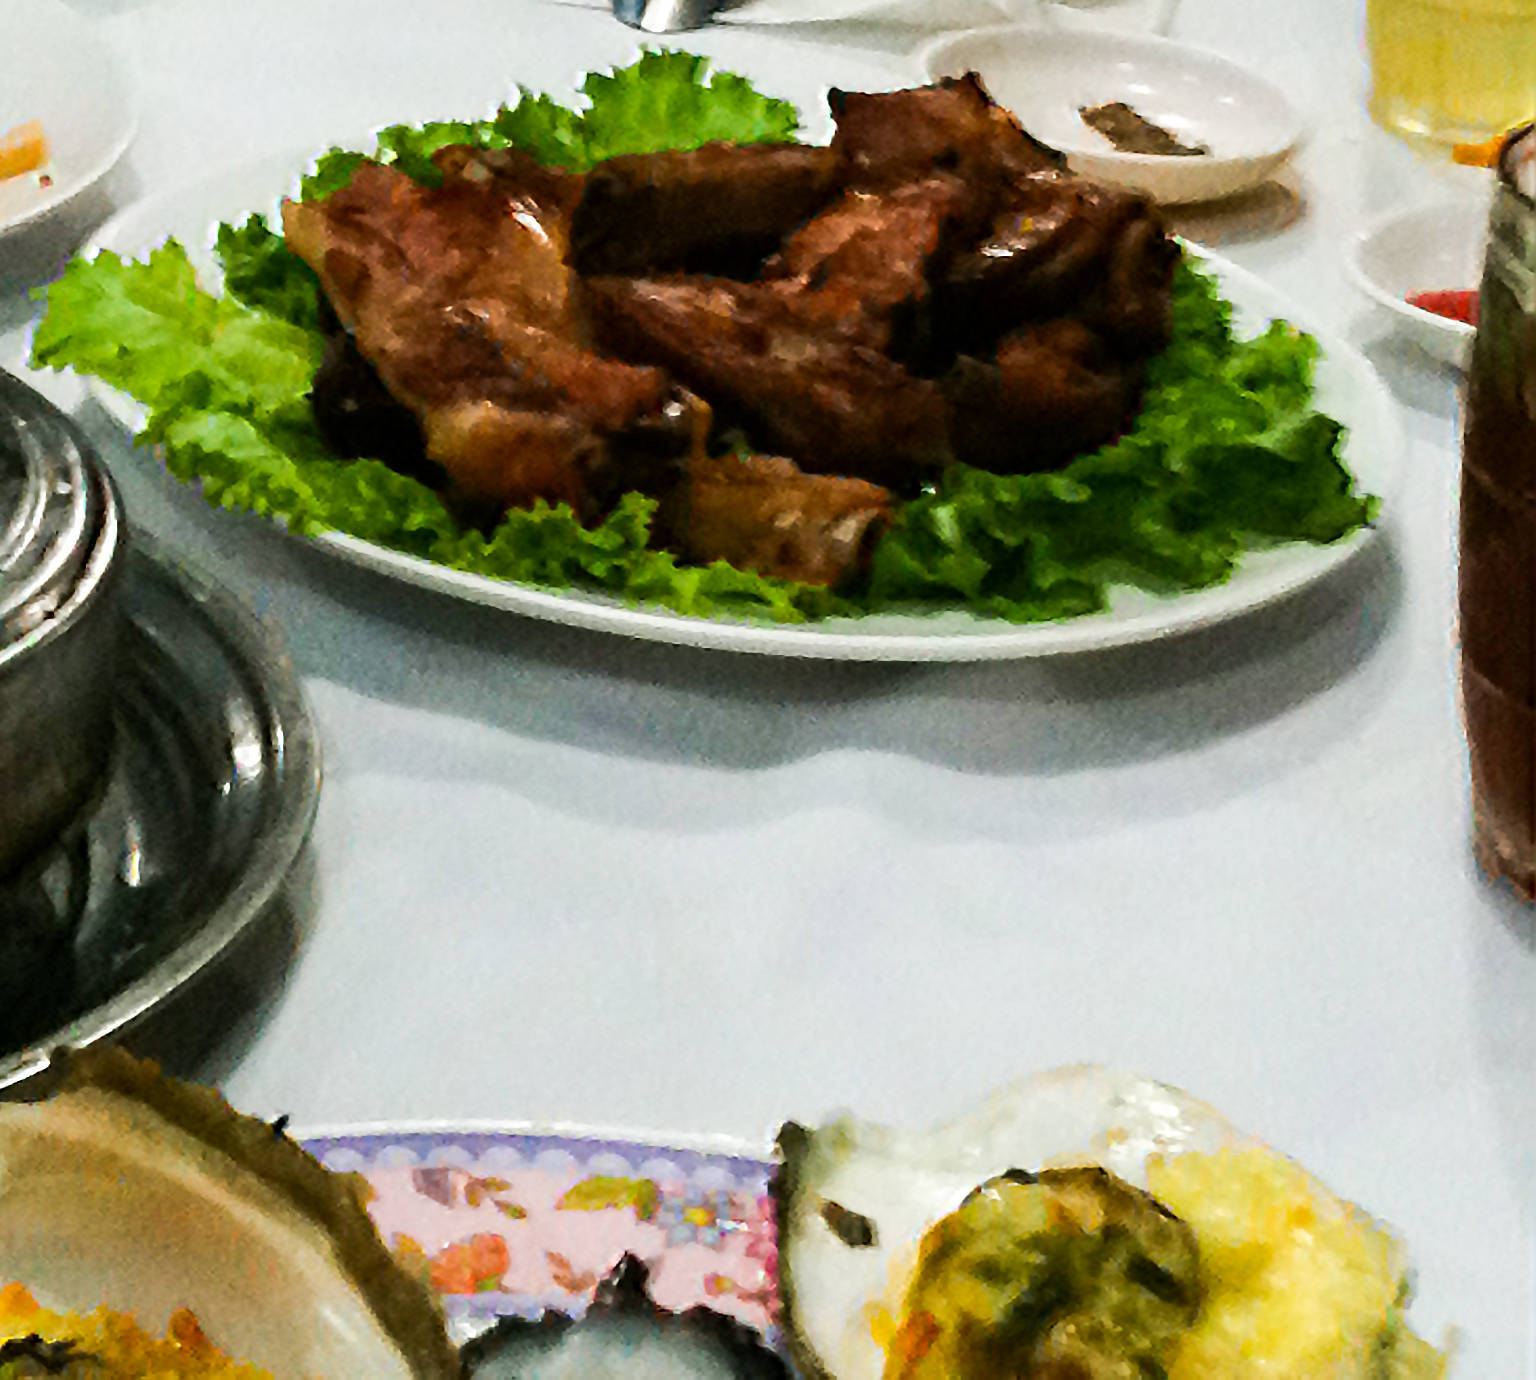 grilled pork ribs with salt and chili (Suon non nuong muoi ot)